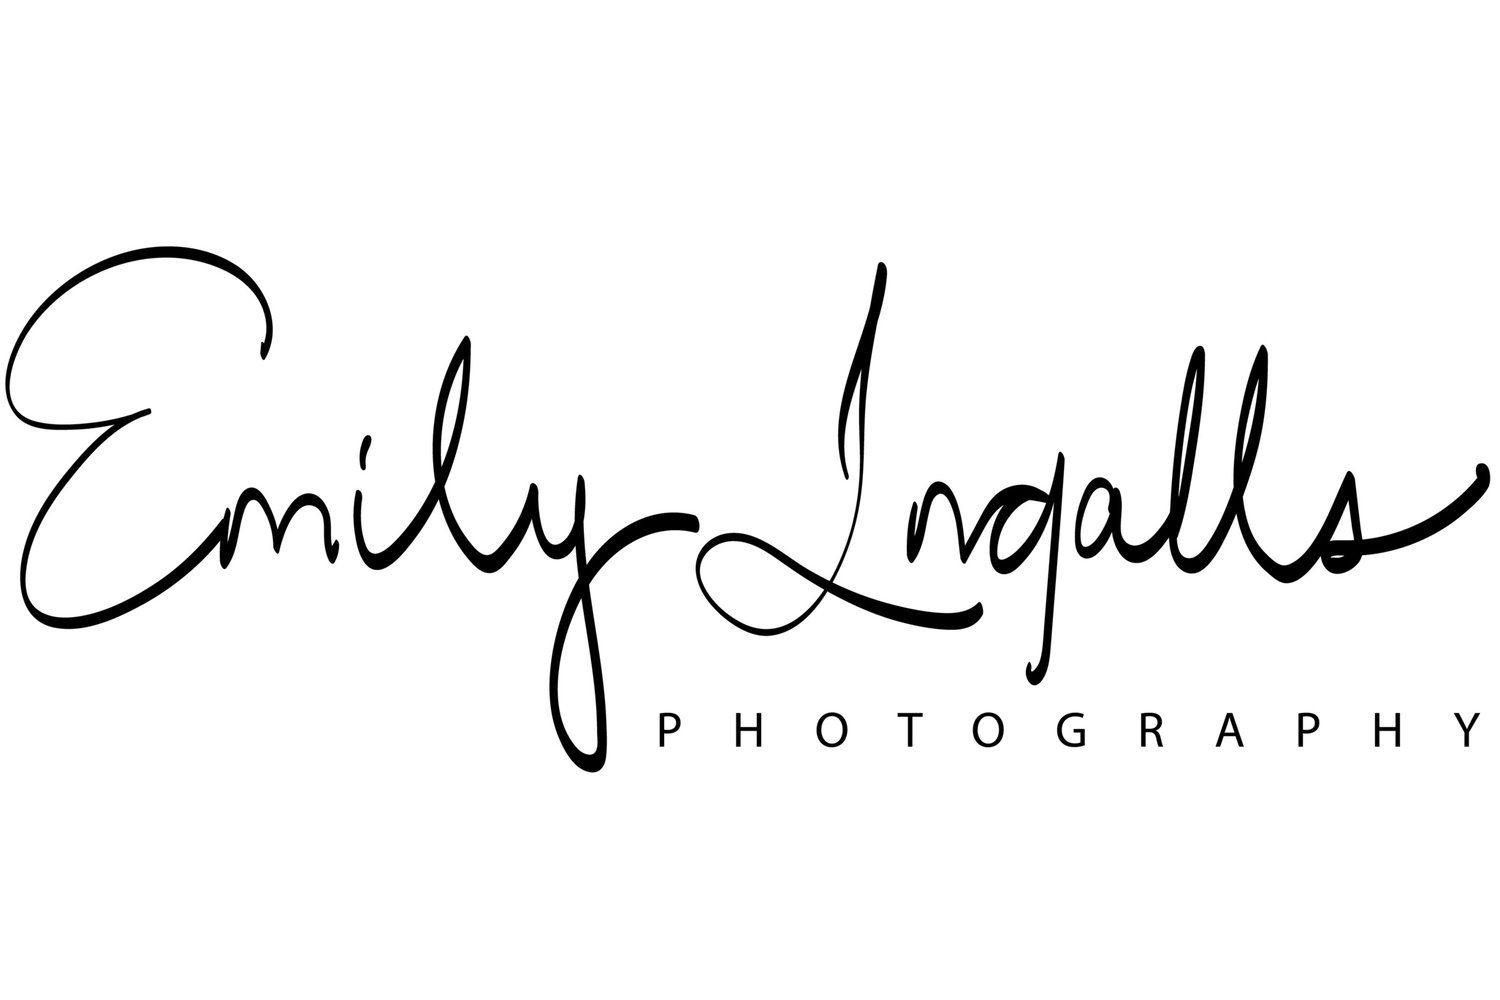 Emily Ingalls Photography | Austin and Round Rock Photographer